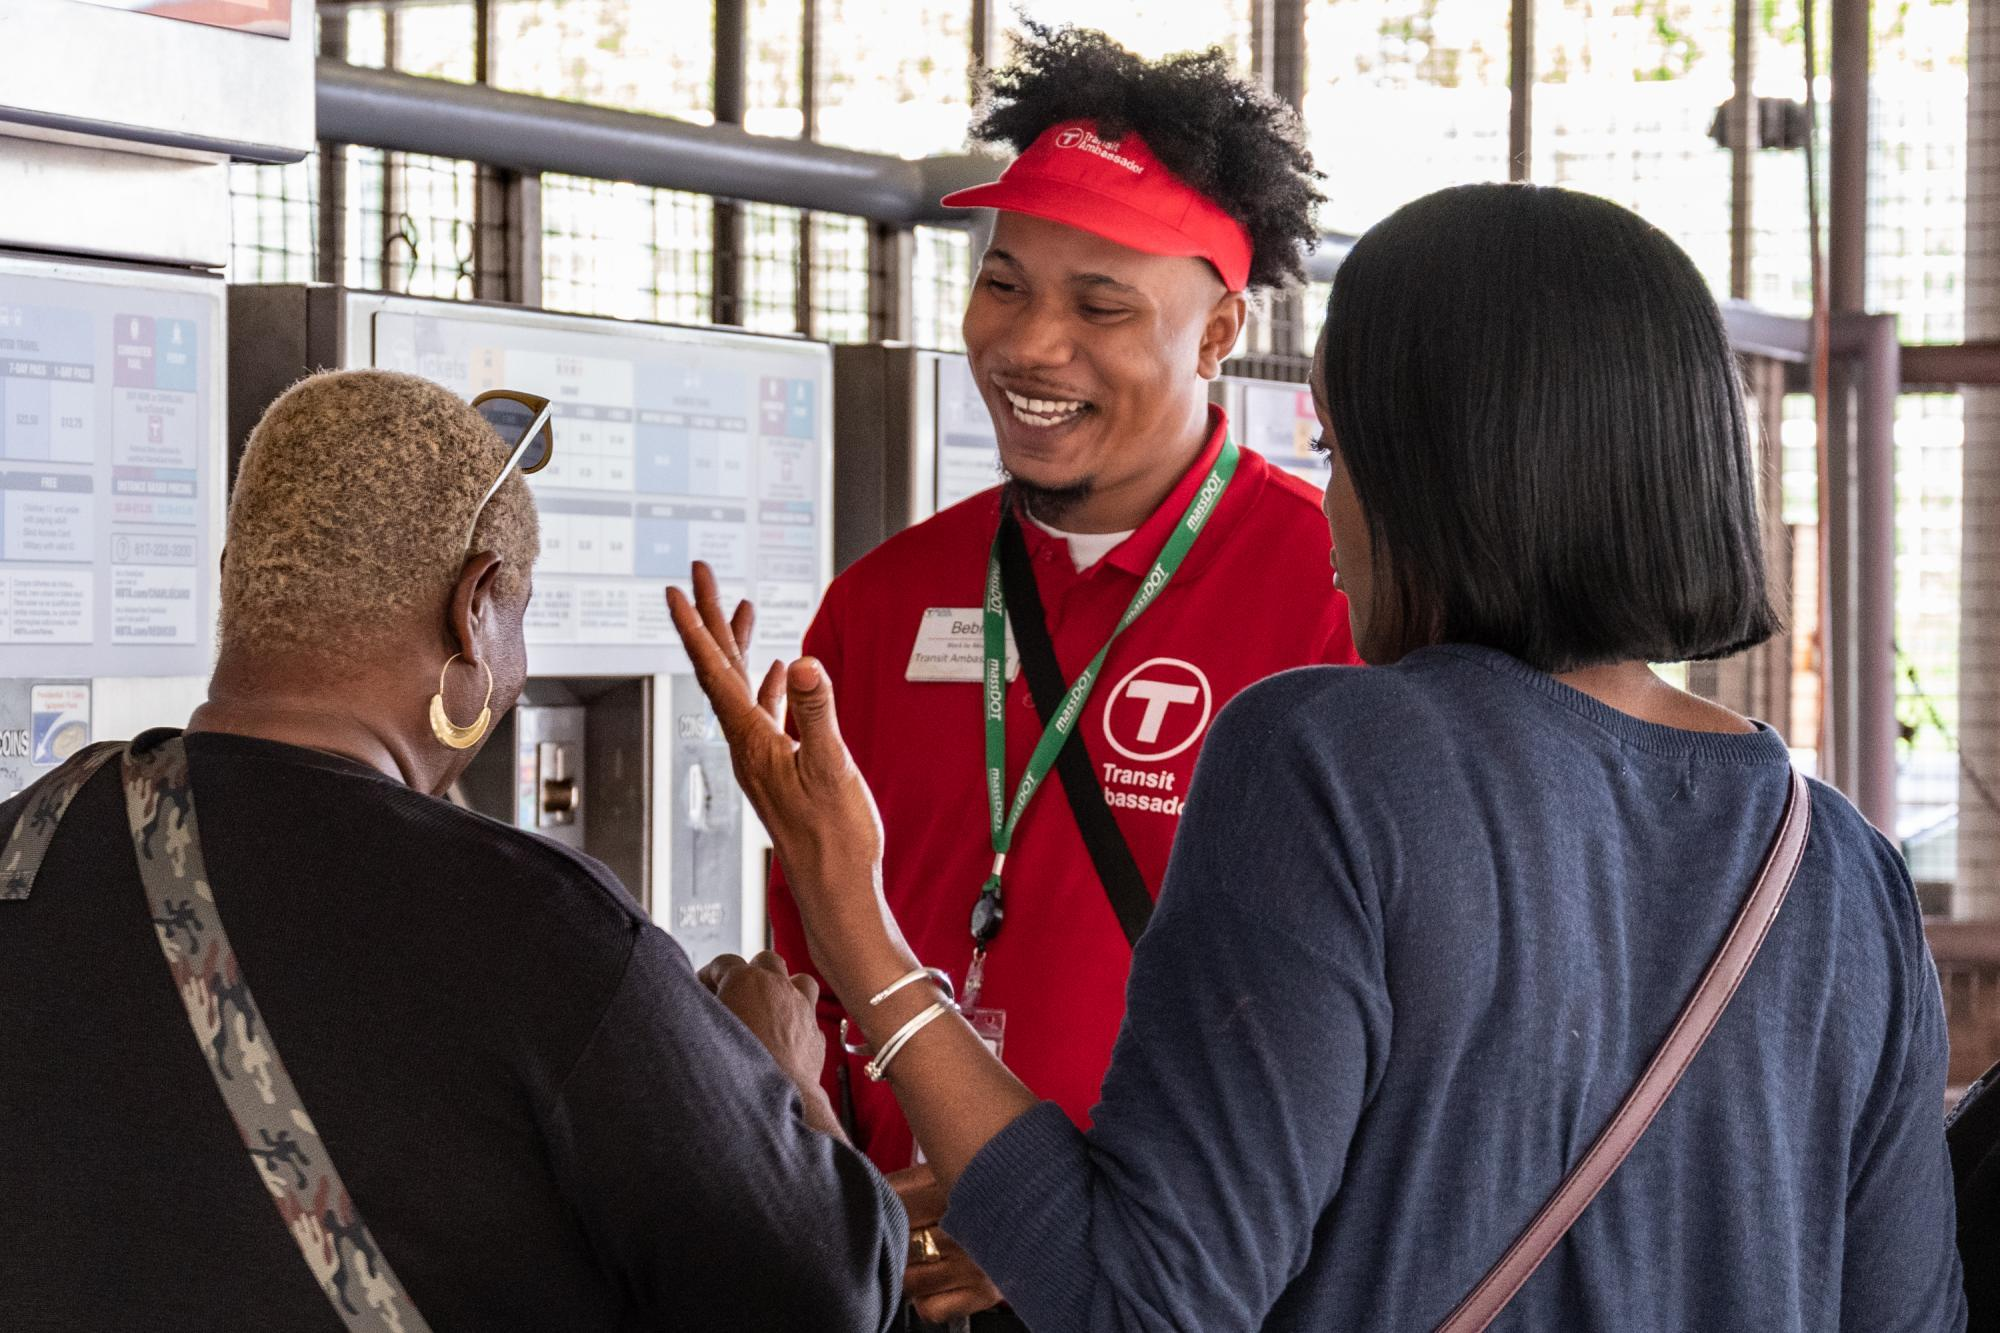 A smiling Transit Ambassador speaks with 2 riders near the fare vending machines at Ruggles Station.